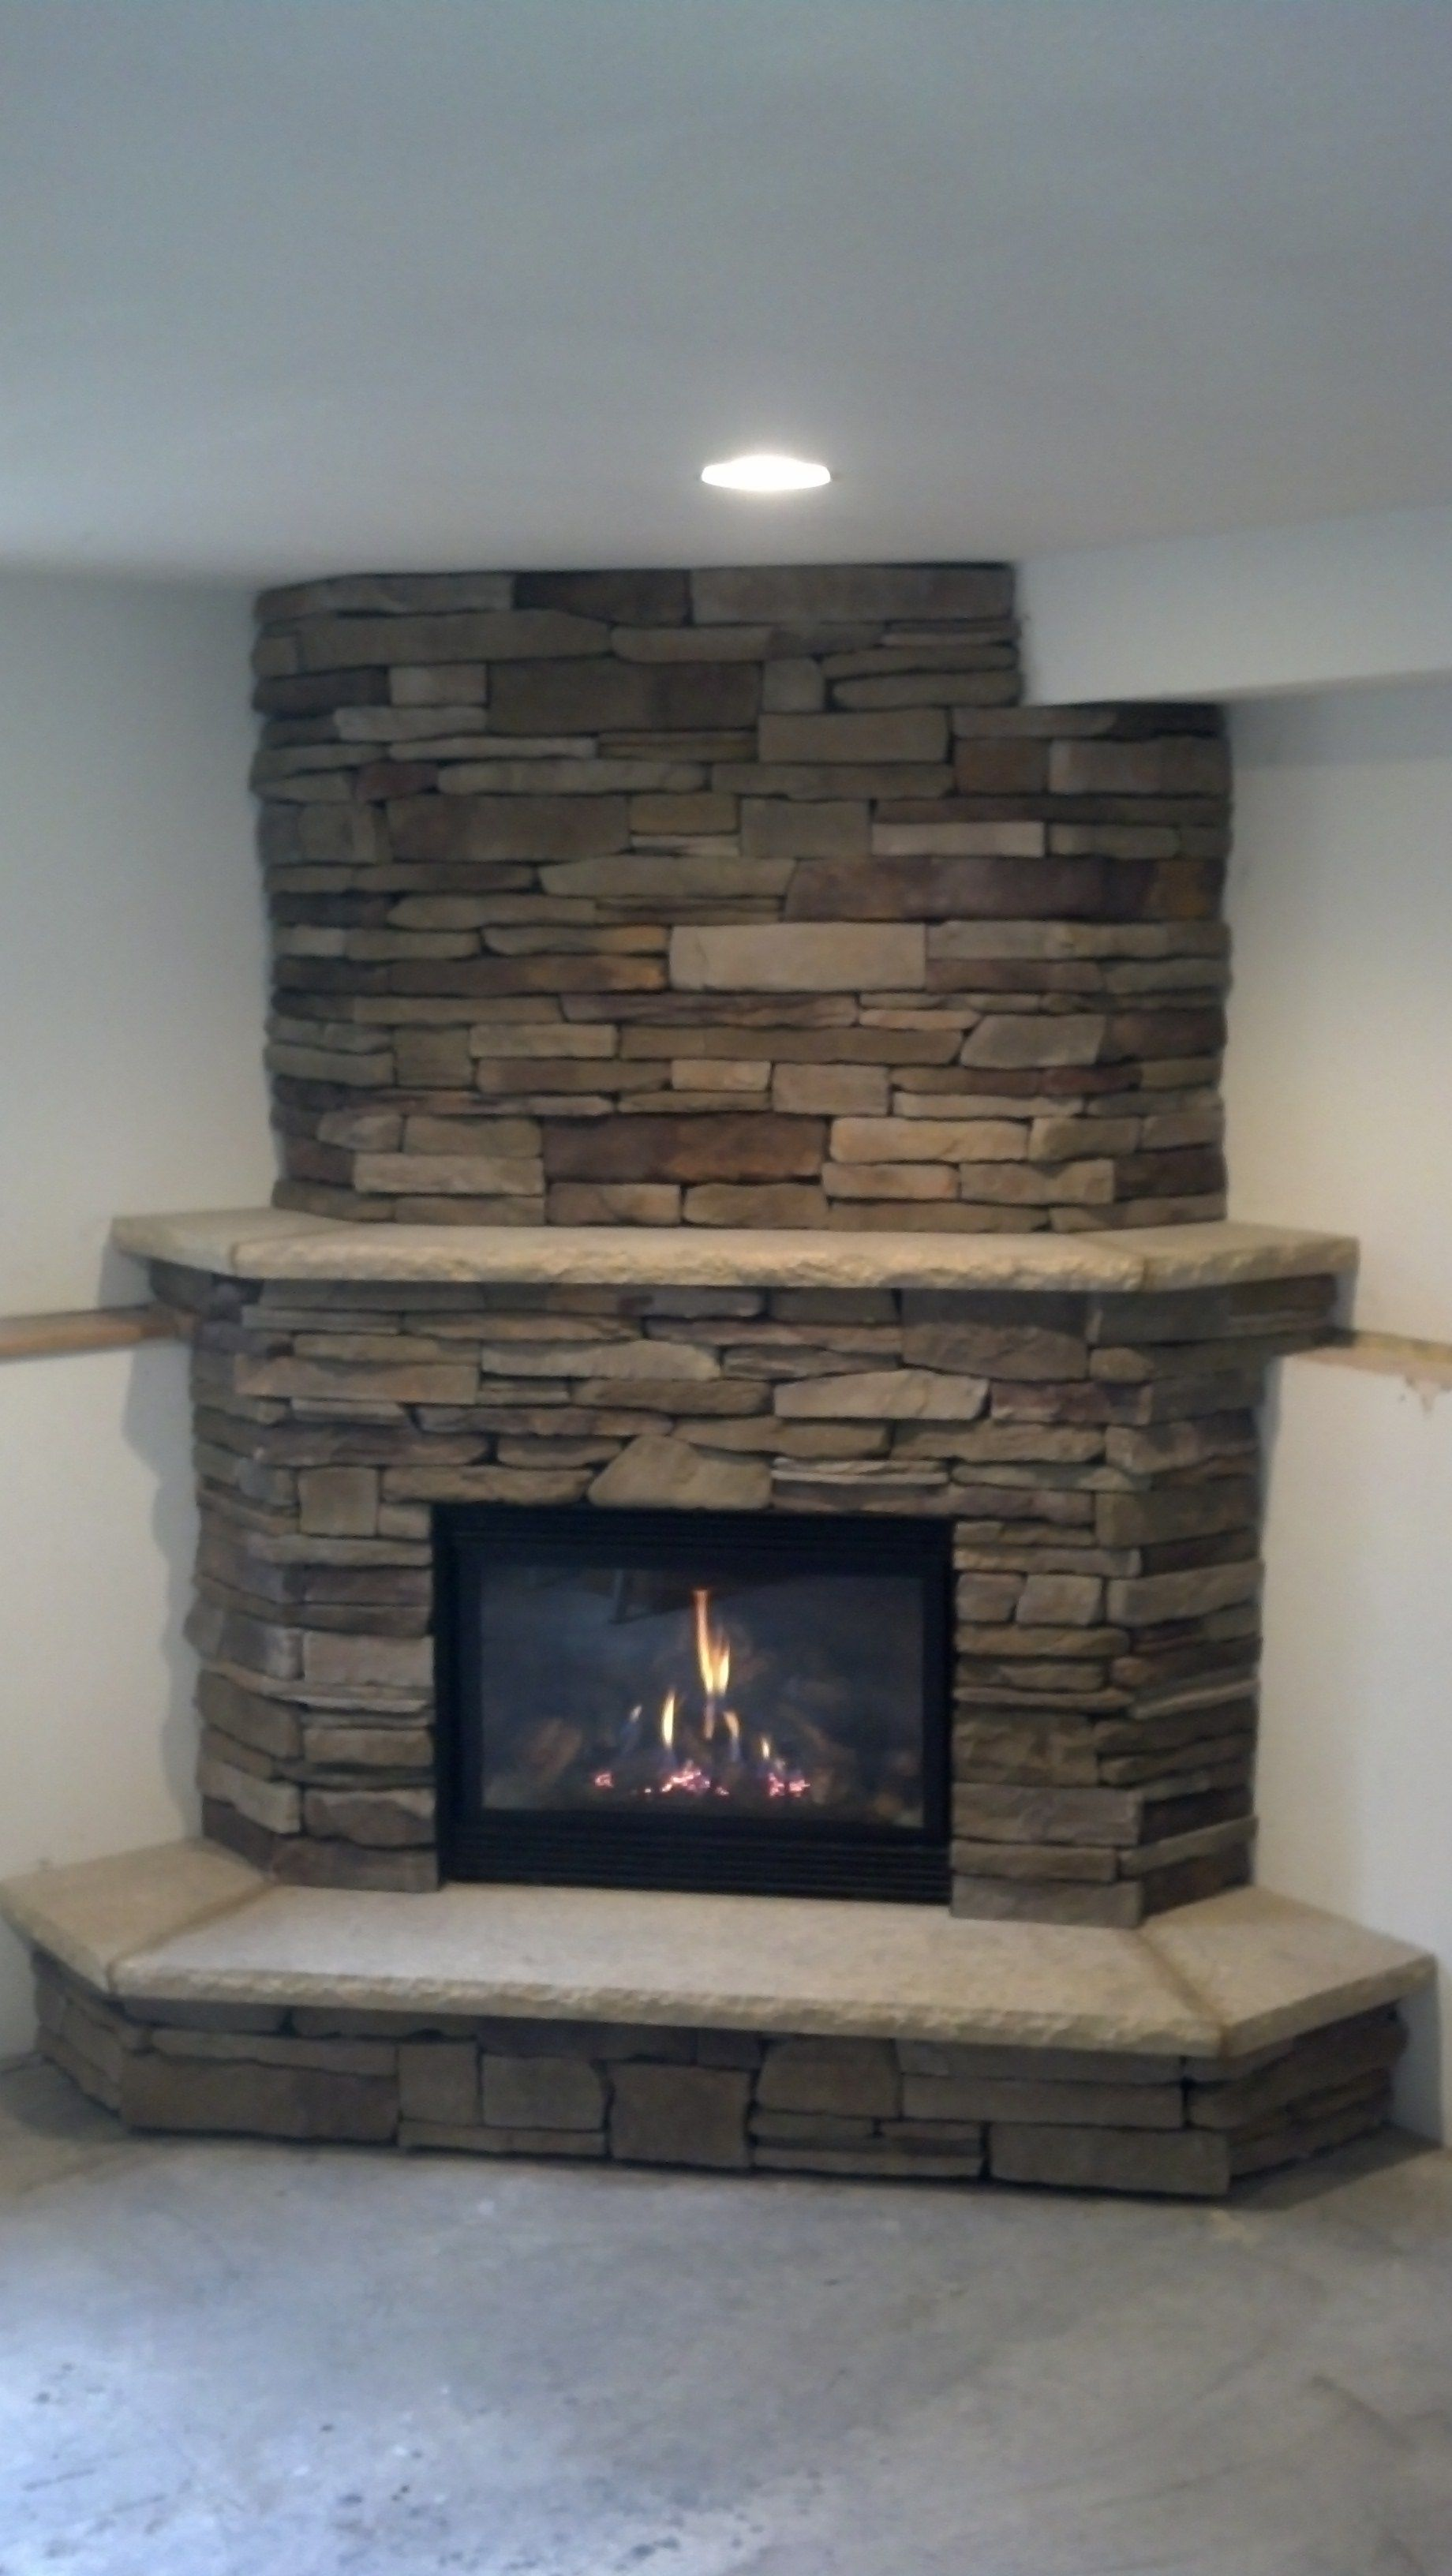 Great American Fireplace Installed This Corner Gas Fireplace With